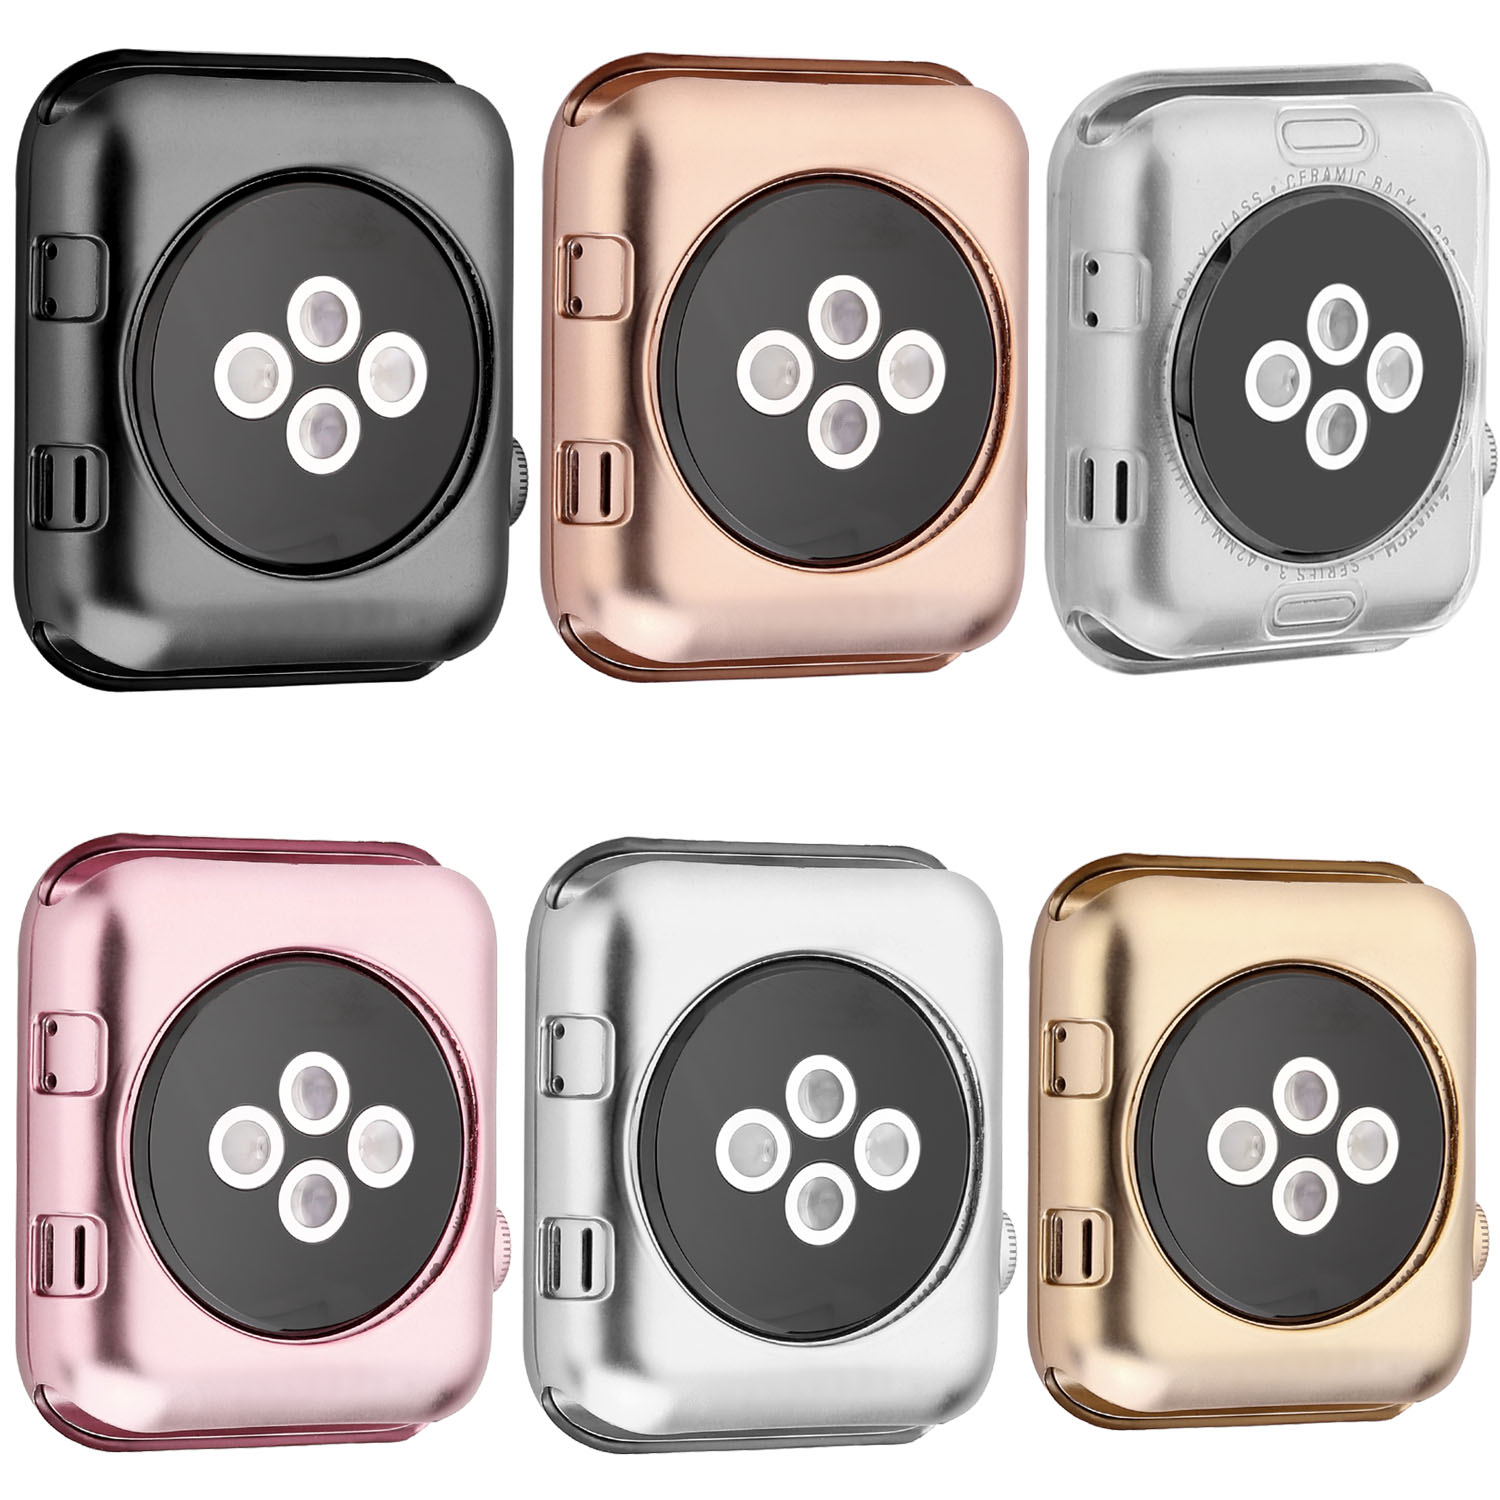 New 6 Colors Gold Plating Soft Silicone Case for Apple Watch Series 1 2 3 Cover Full Body Protection Watch Cover Band 42mm 38mm